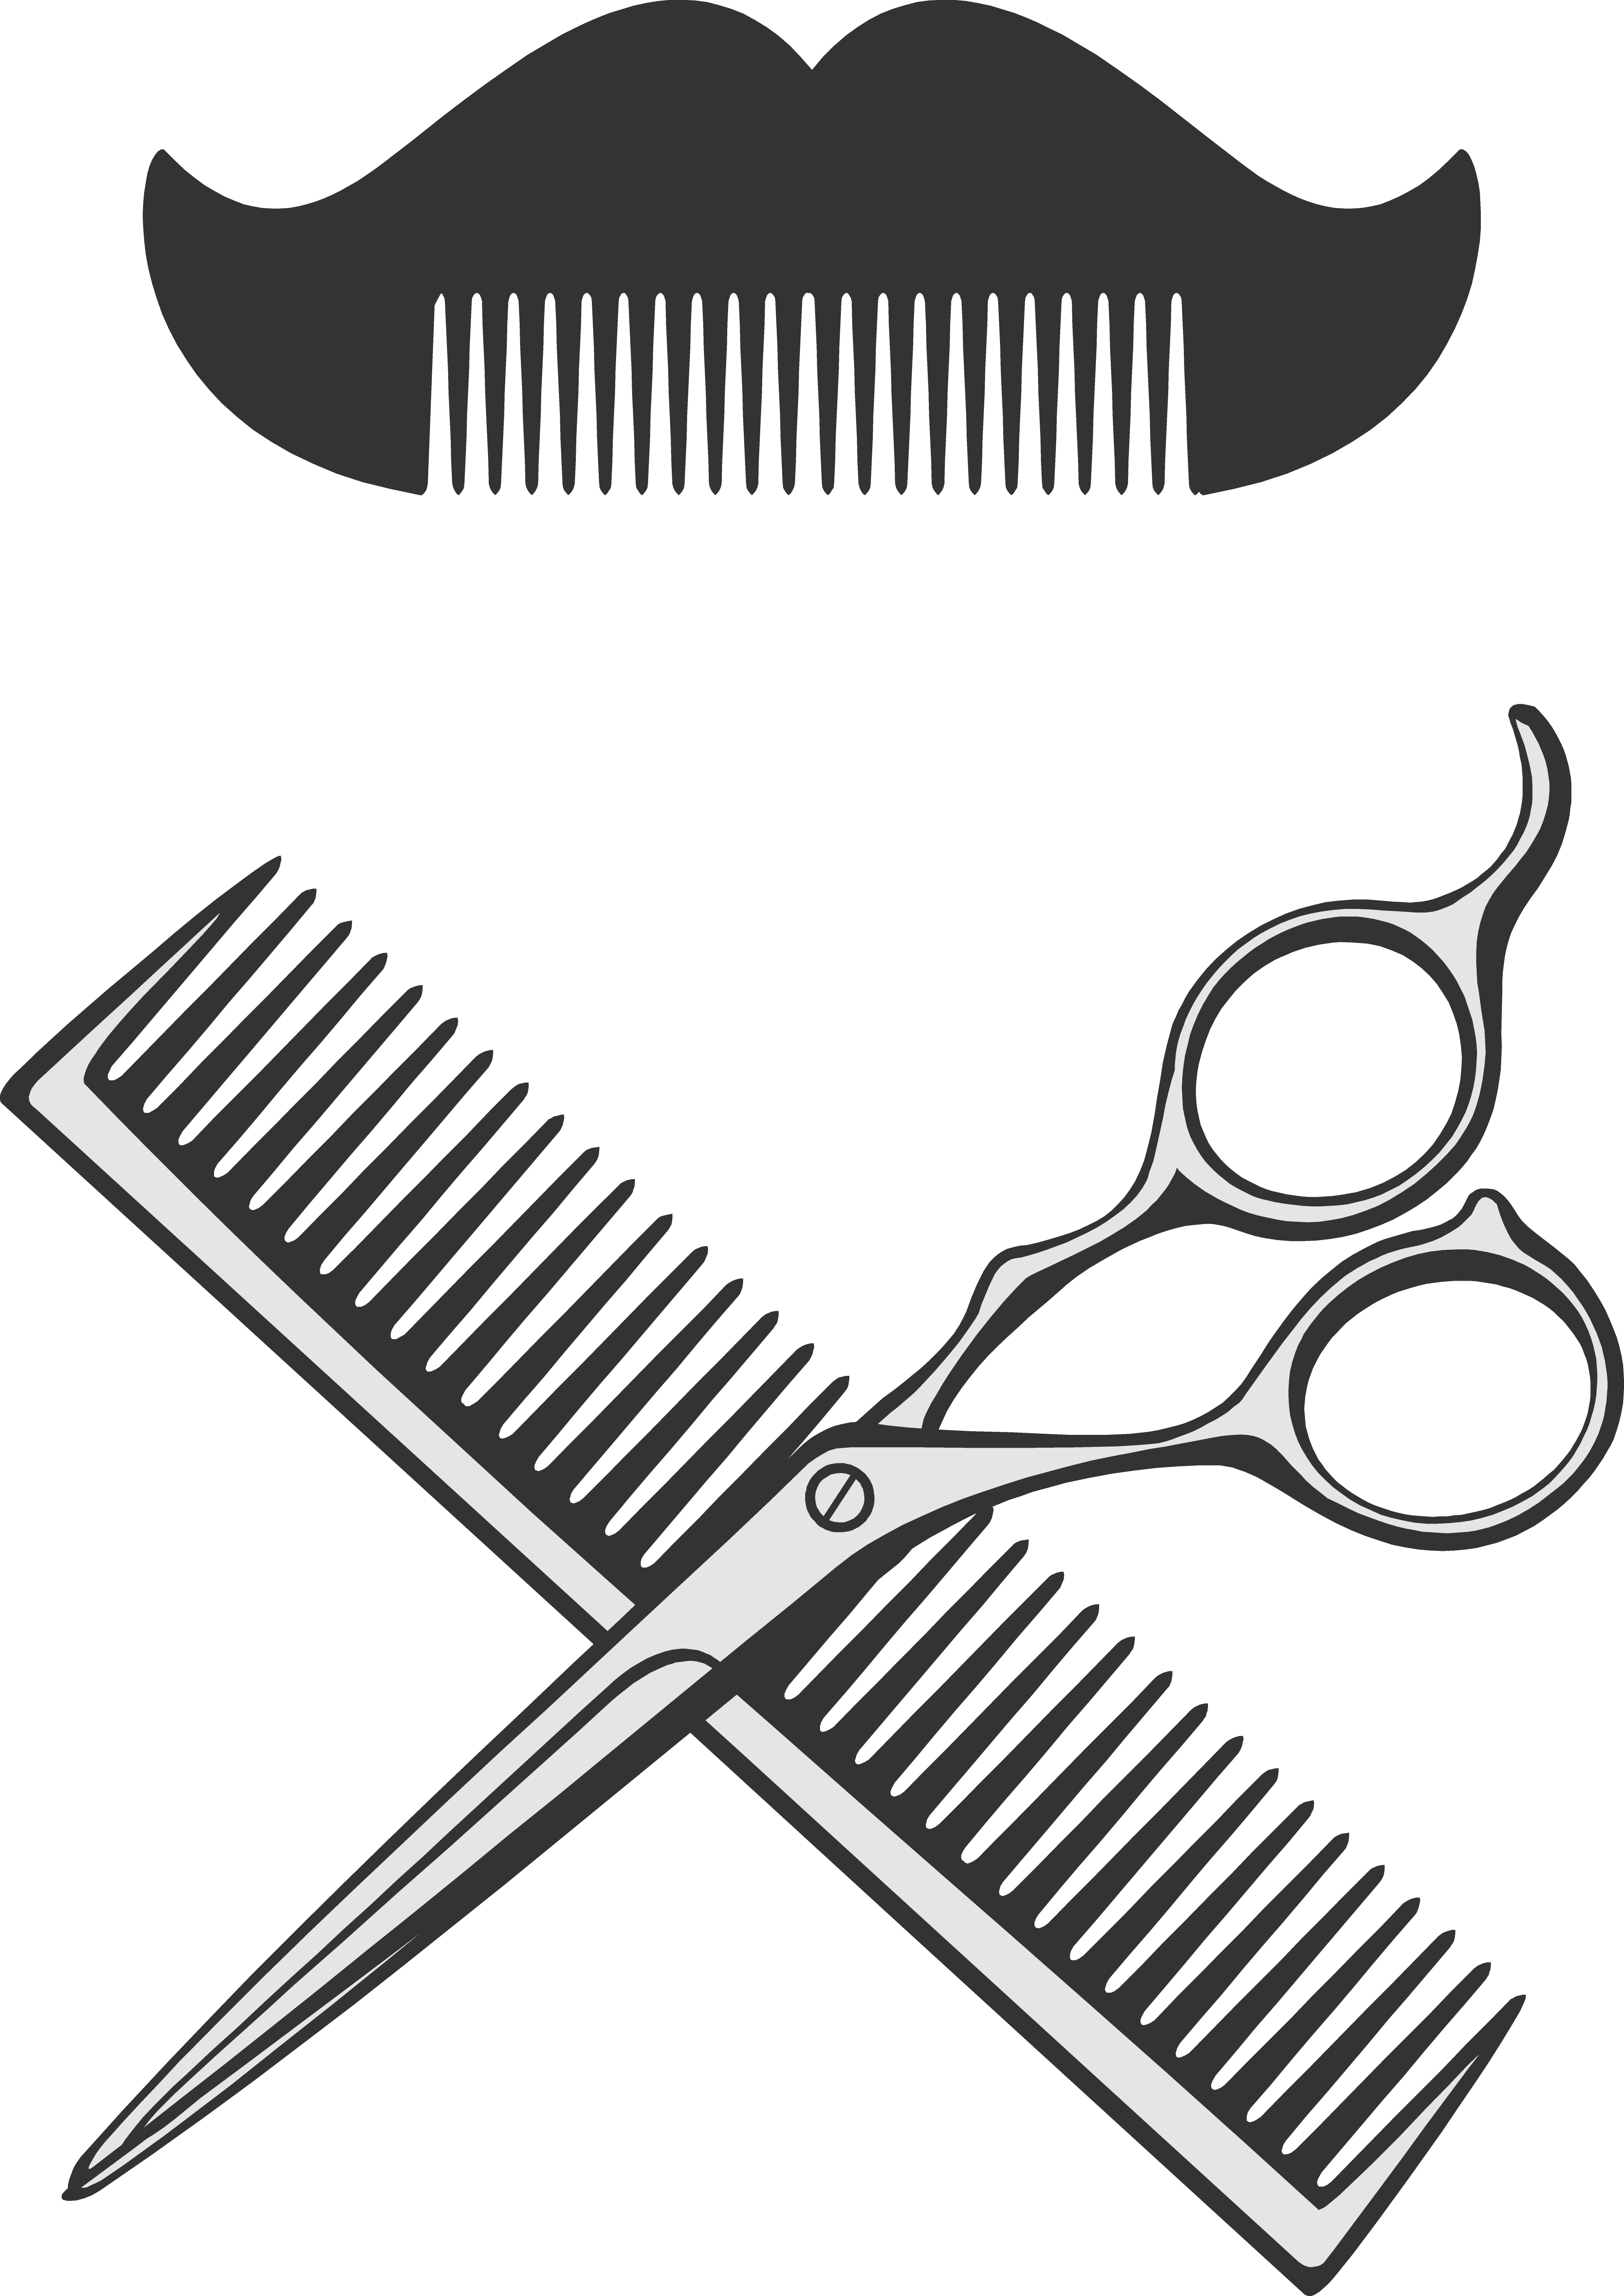 Comb barber and vector. Clipart scissors hair dryer